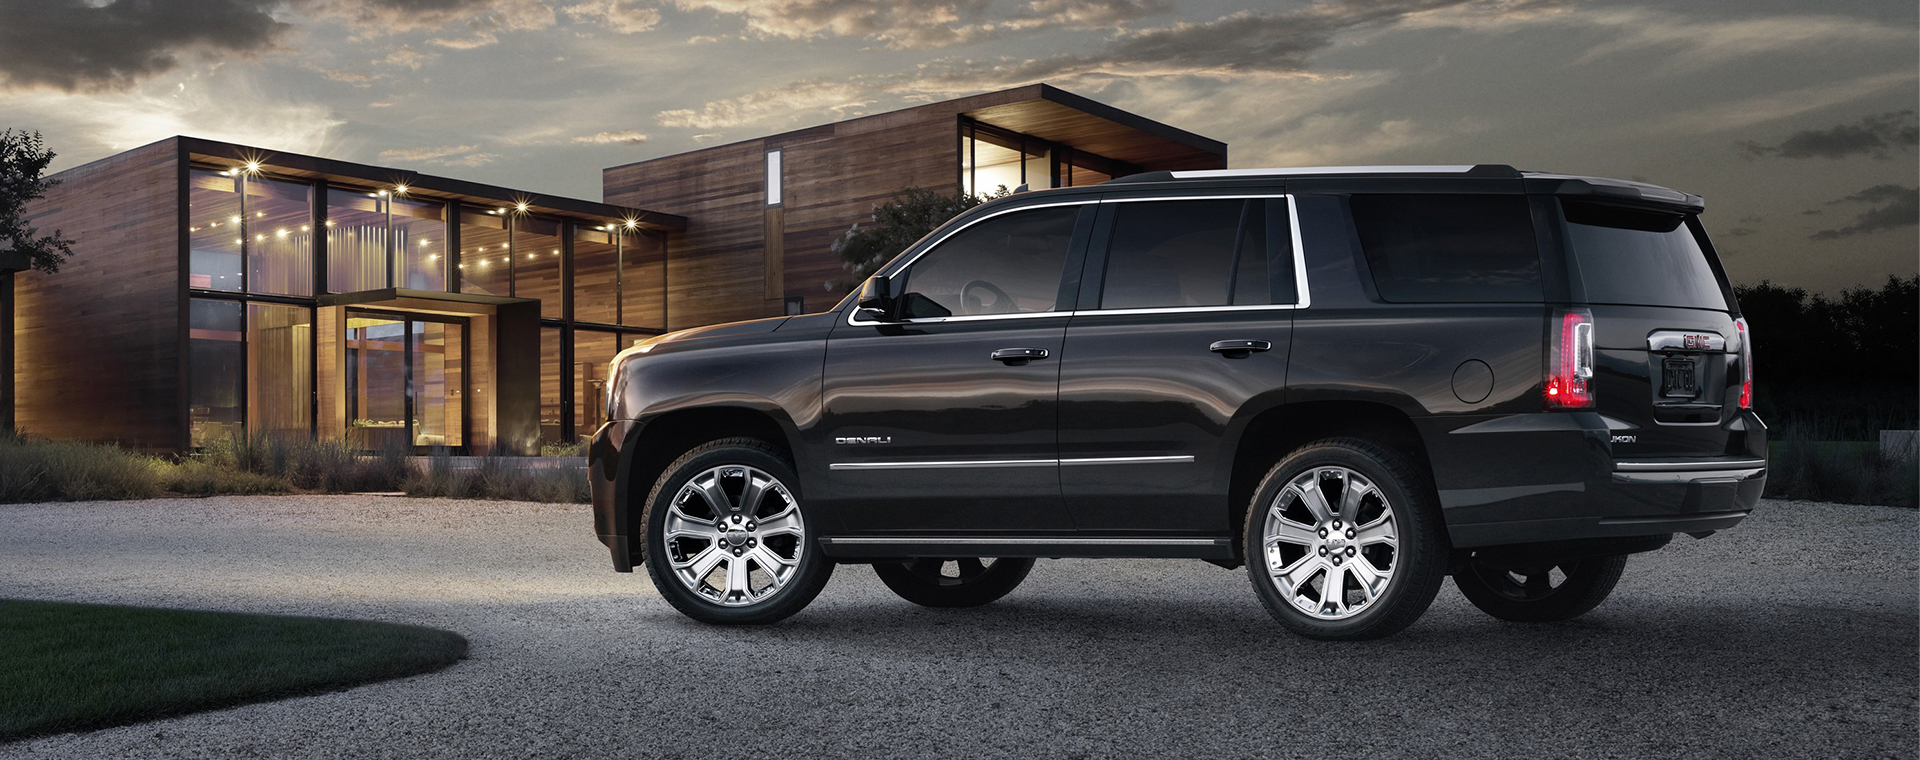 New Yukon inventory at Quirk Buick GMC